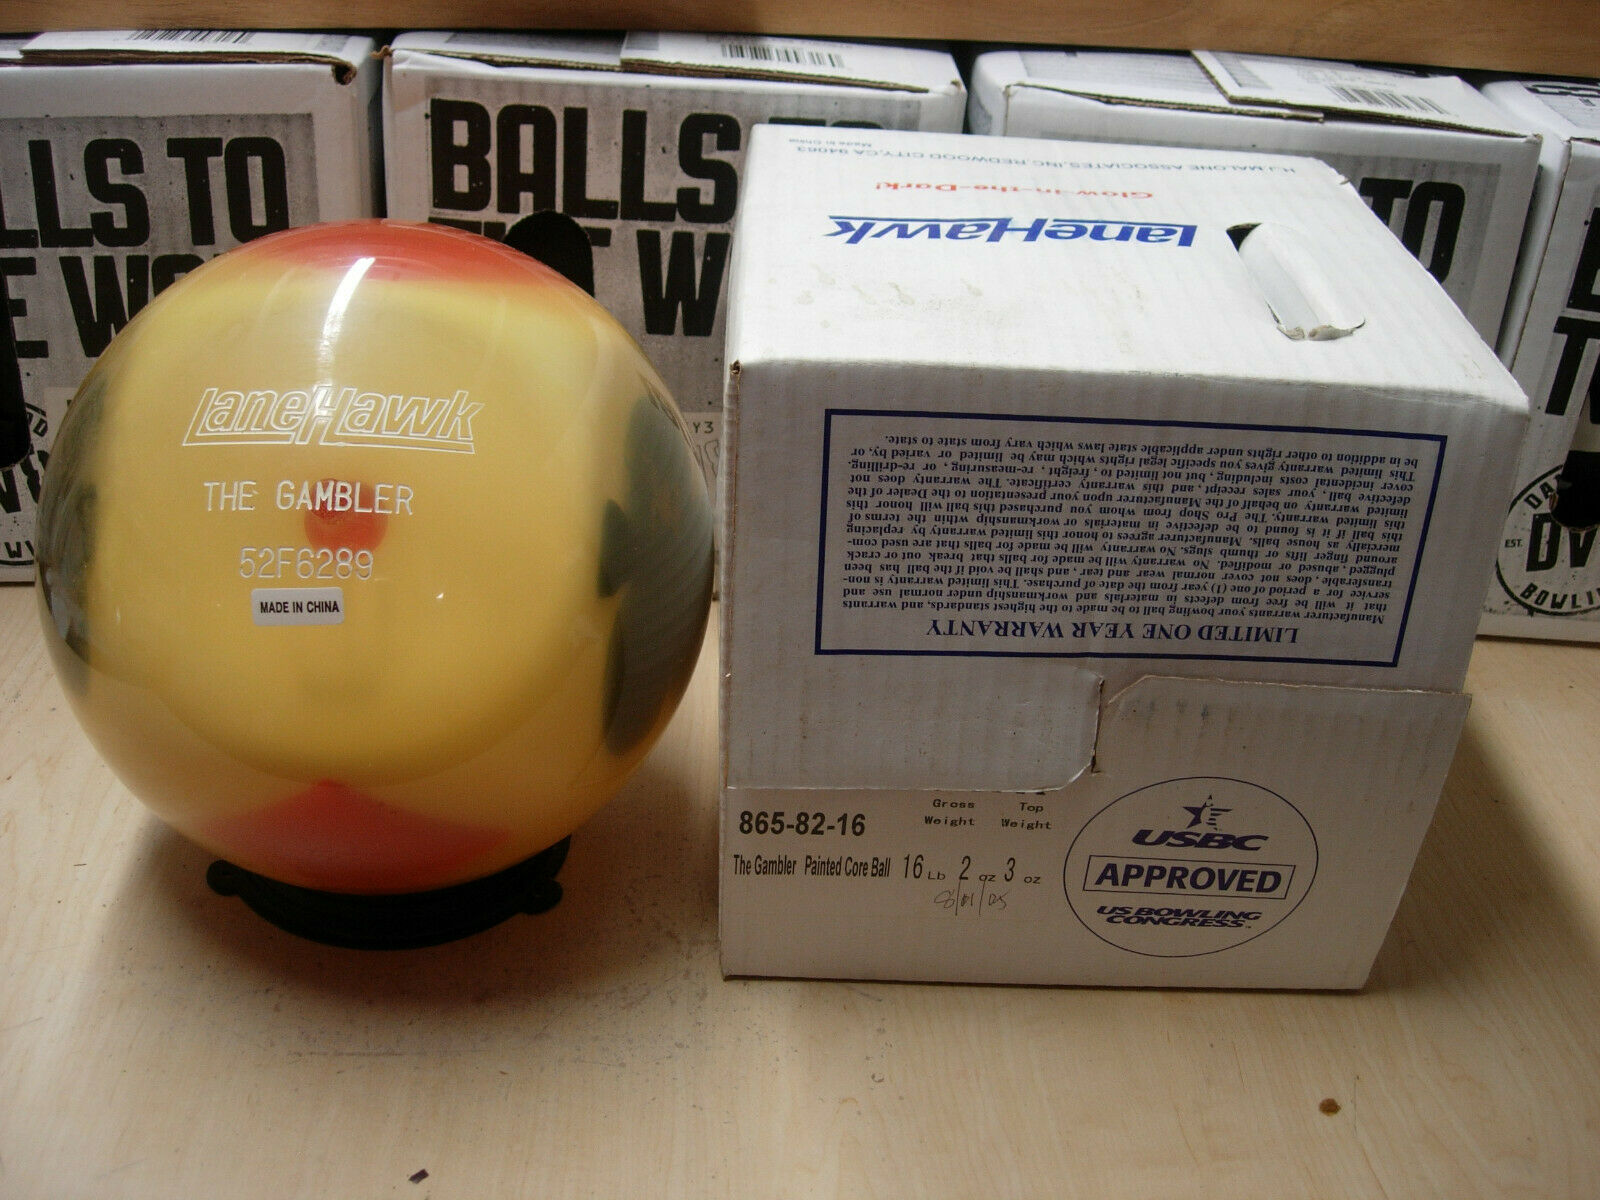 16oz TW 3 NIB Lanehawk GAMBLER Clear Bowling Ball Undrilled golden Yellow